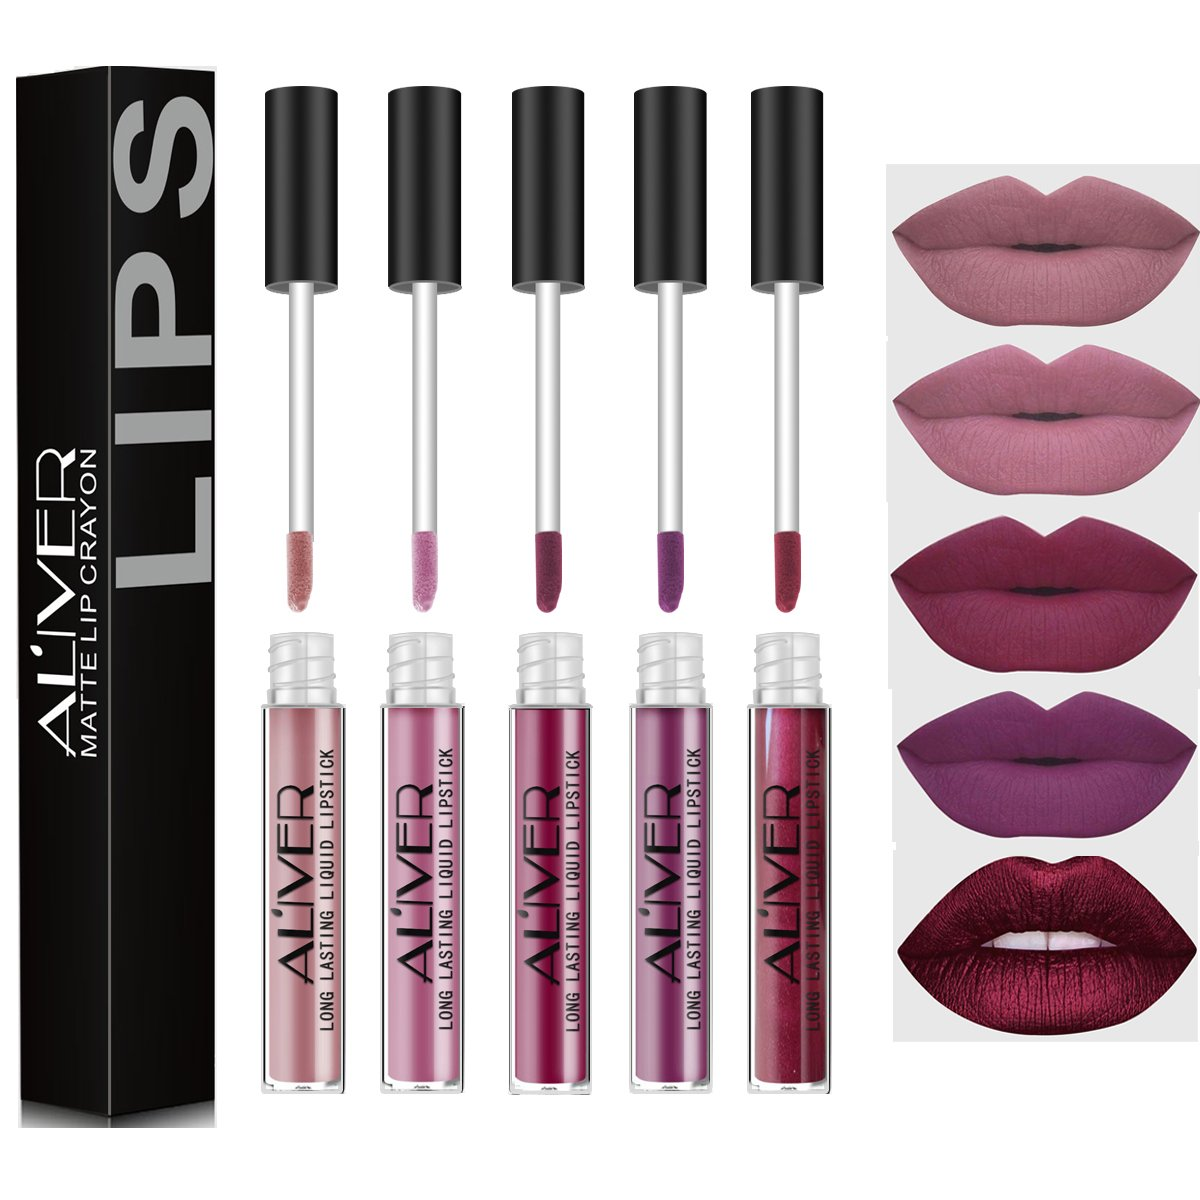 ALIVER 5 Pcs Matte Liquid Lipstick Waterproof Long-Lasting Pigmented Lip Gloss Set (# 1.5.6.7.12)